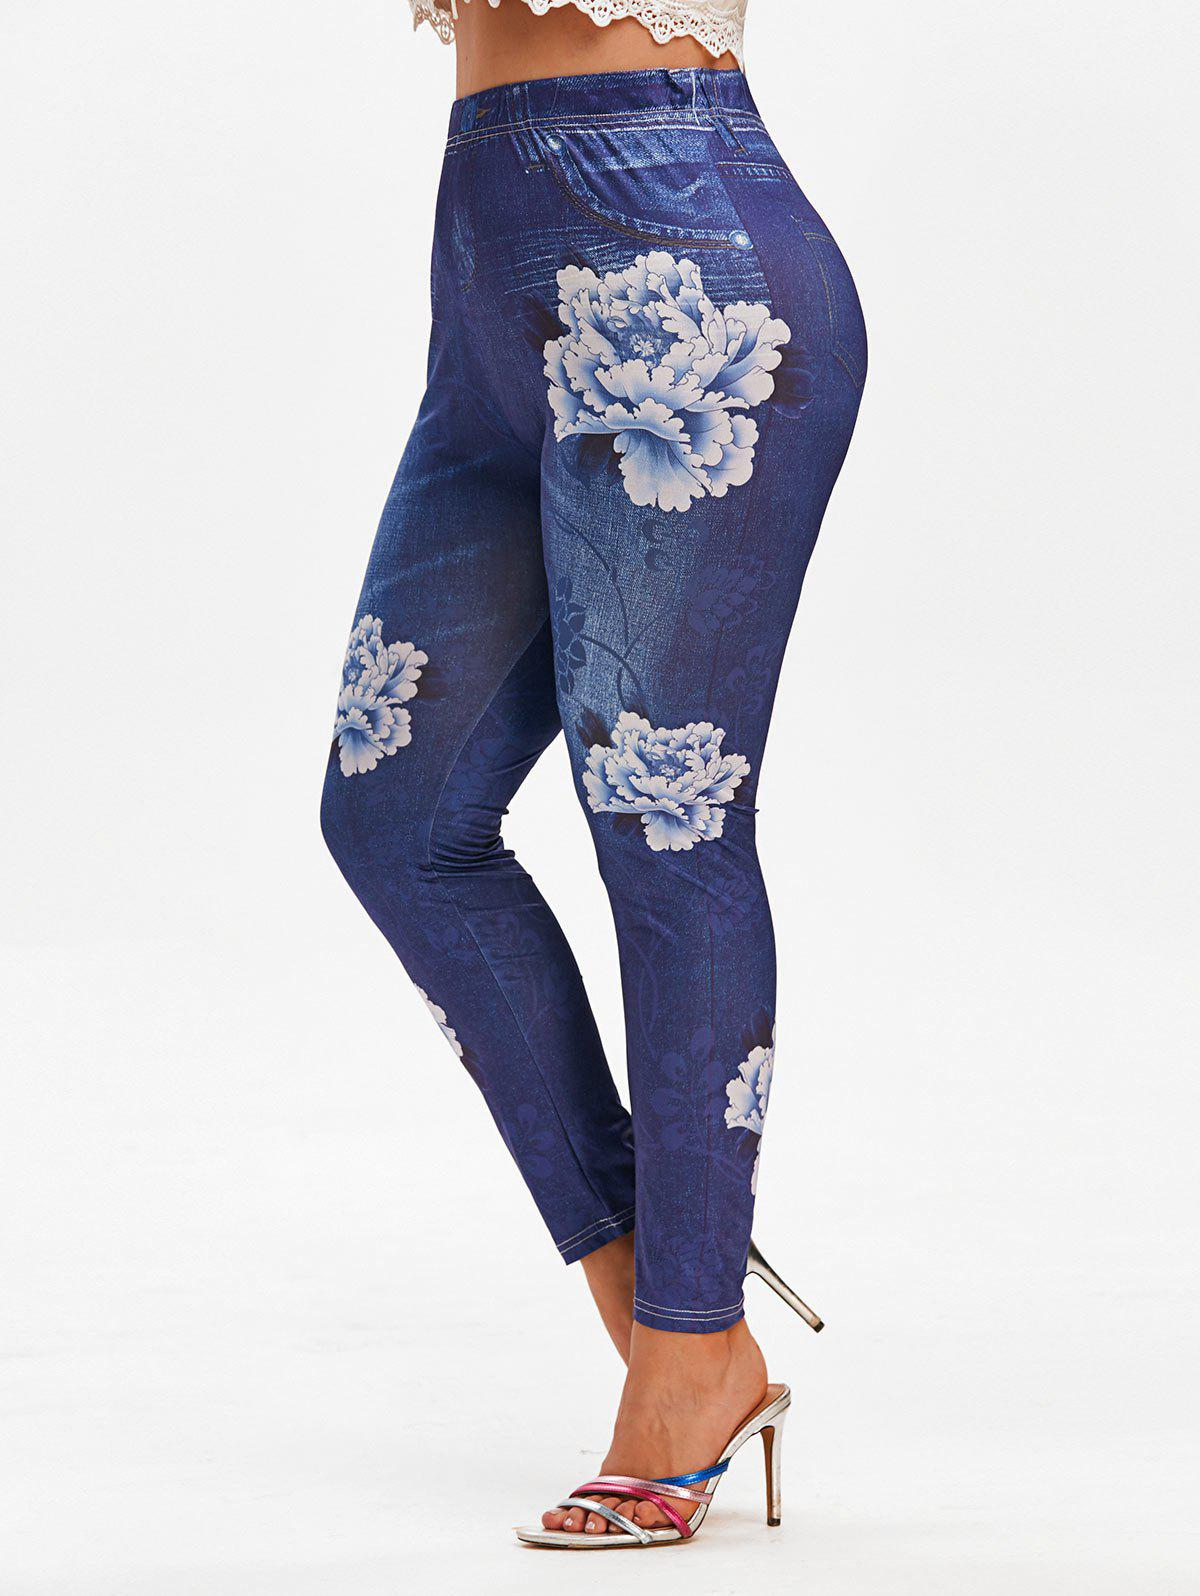 Buy Plus Size 3D Flower Printed High Waisted Jeggings